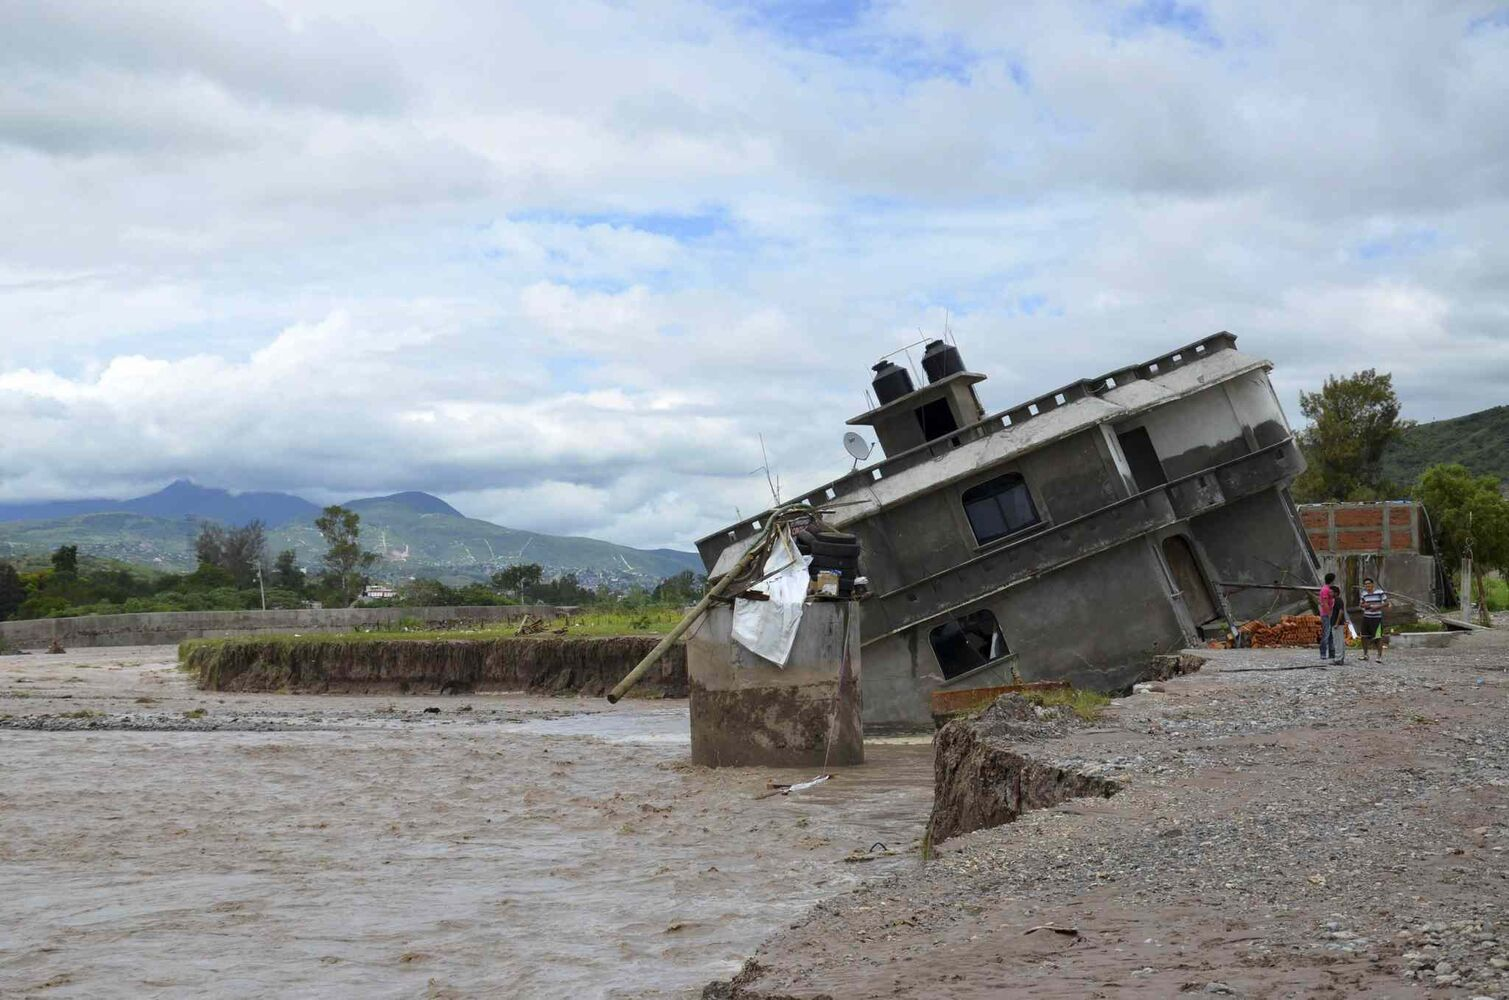 People stand next to home collapsed into the Huacapa River overflowed due to heavy rains caused by Tropical Storm Manuel near the town of Petaquillas, Mexico, Tuesday, Sept. 17, 2013.